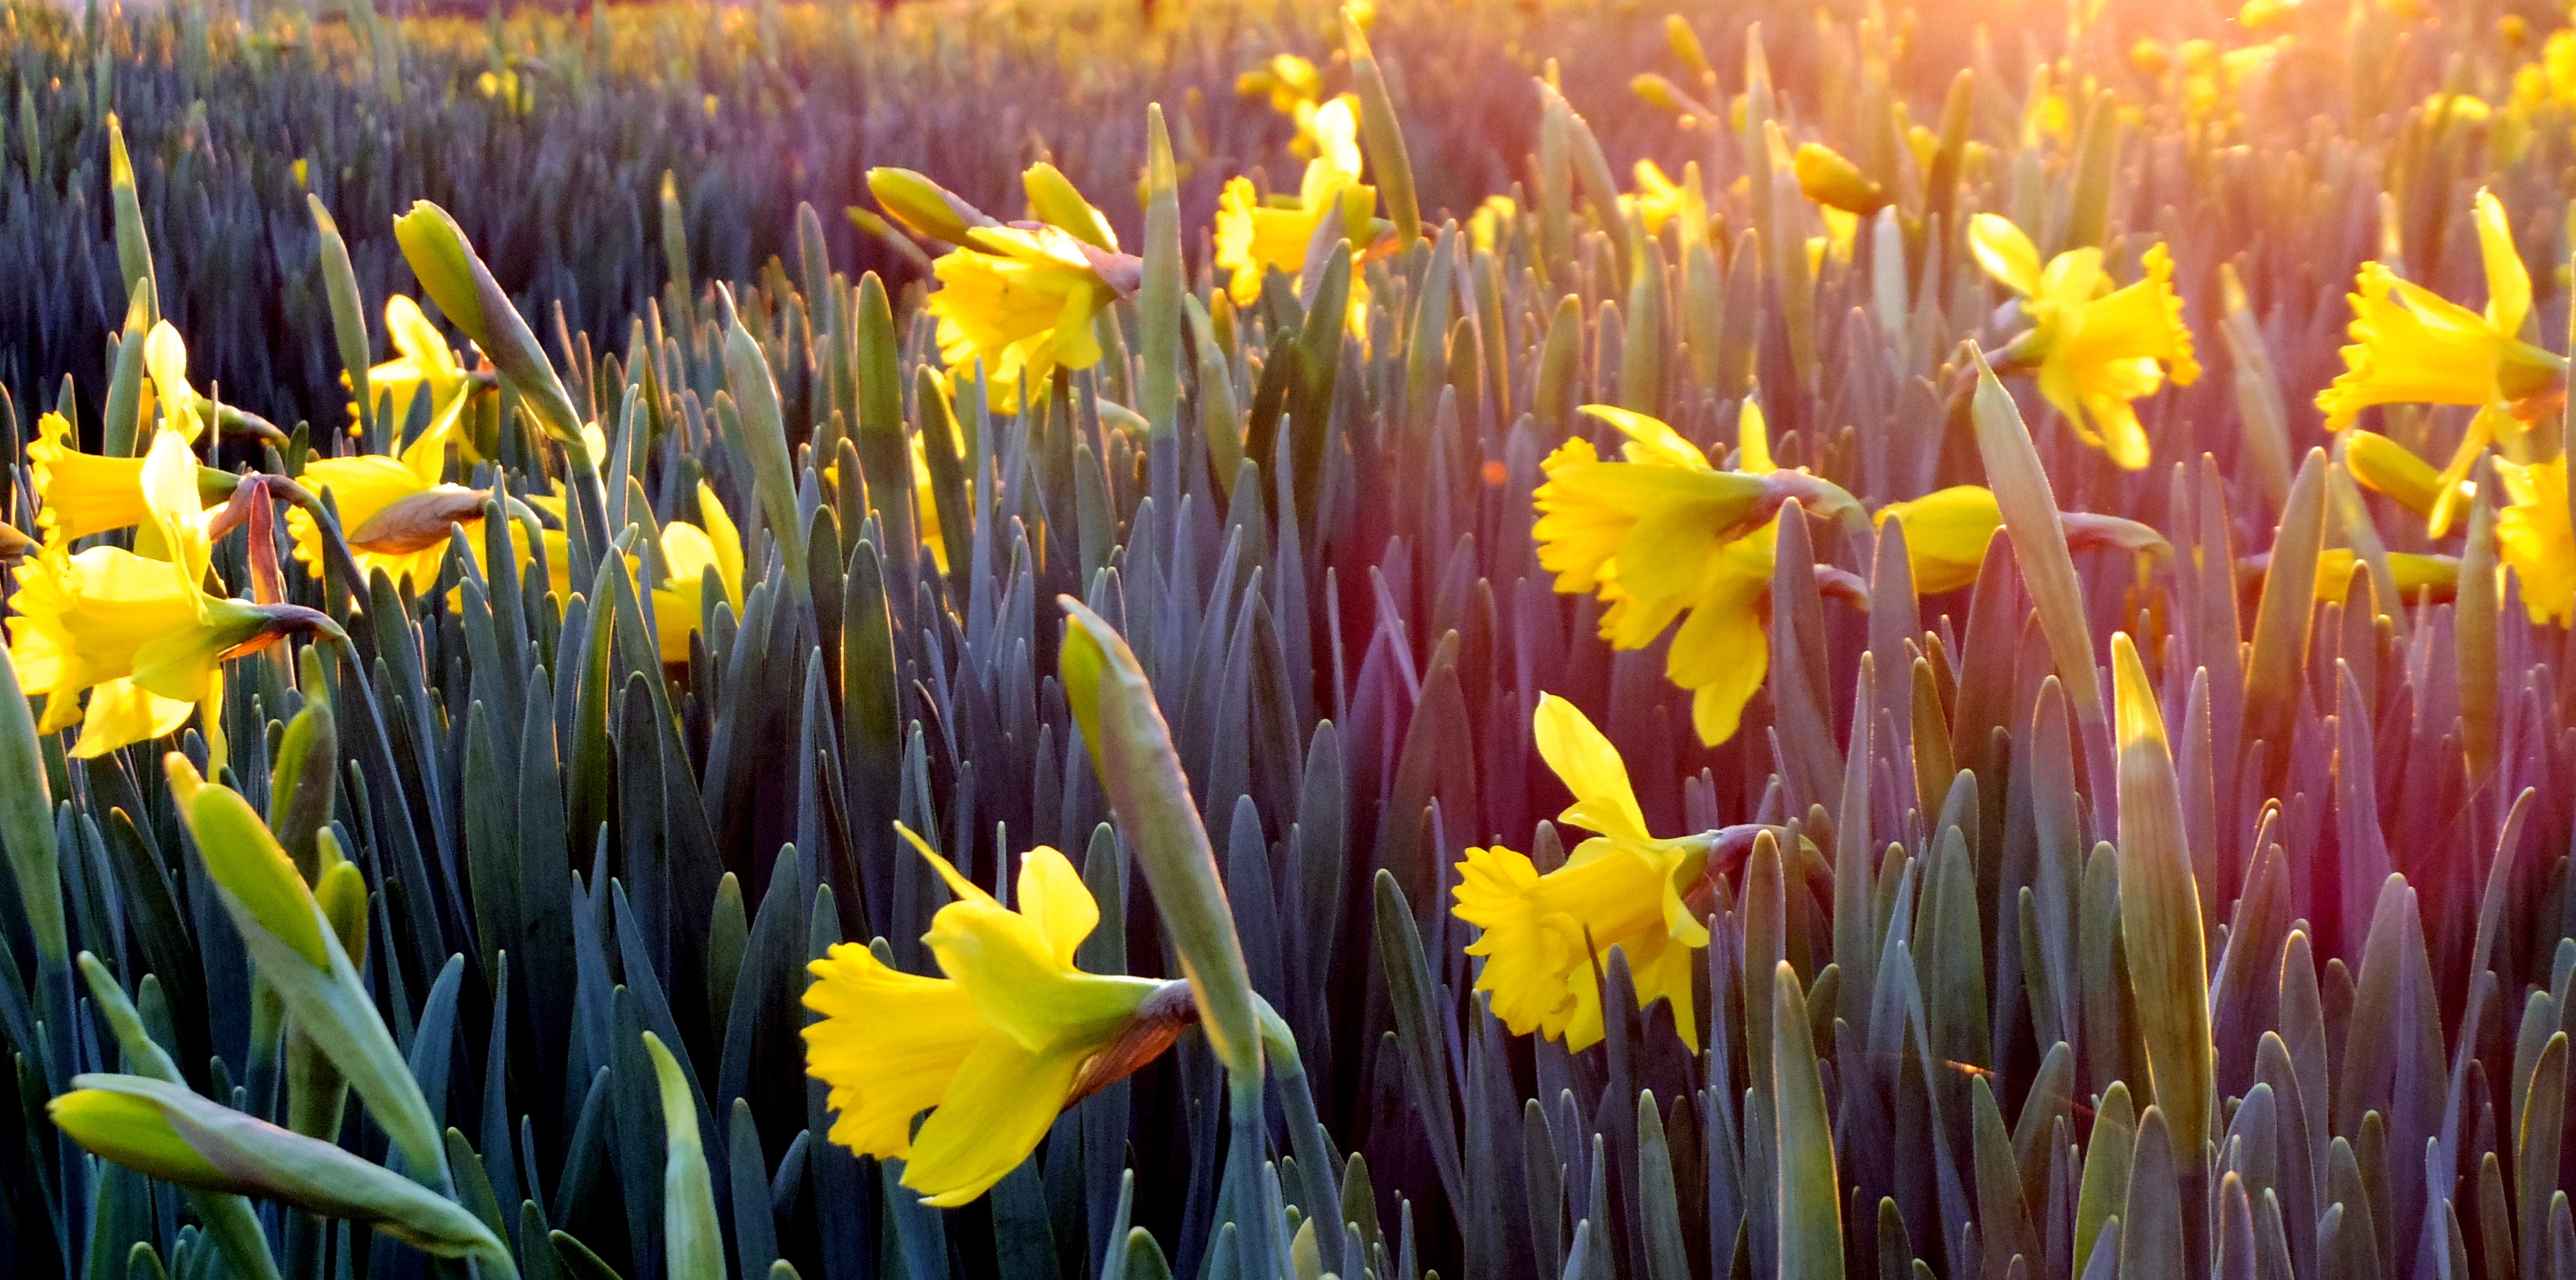 landscape-photography-of-field-covered-with-yellow-flowers-911323